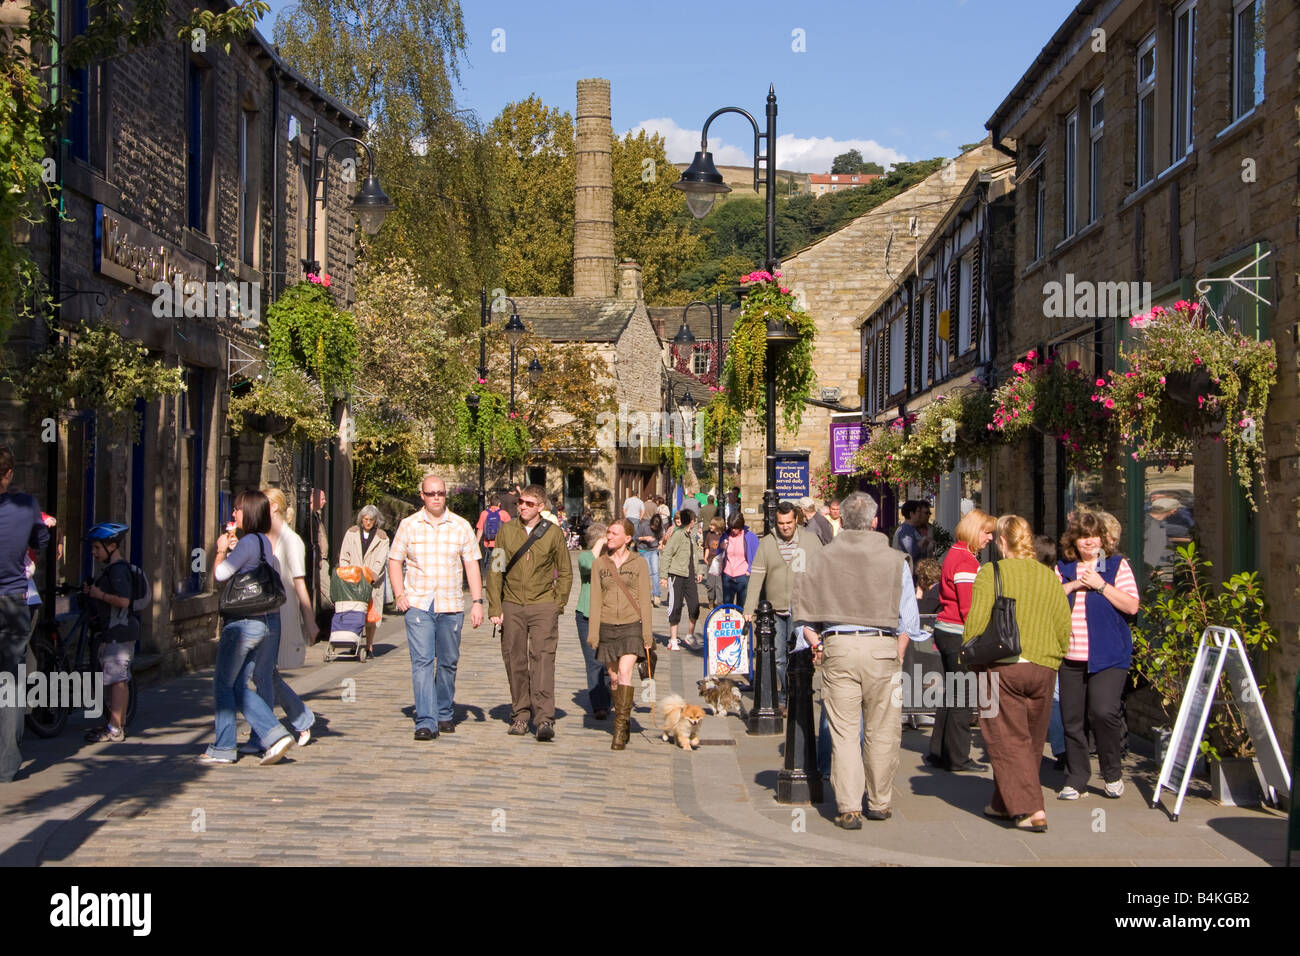 Busy street in  Hebden Bridge, West Yorkshire, England. - Stock Image